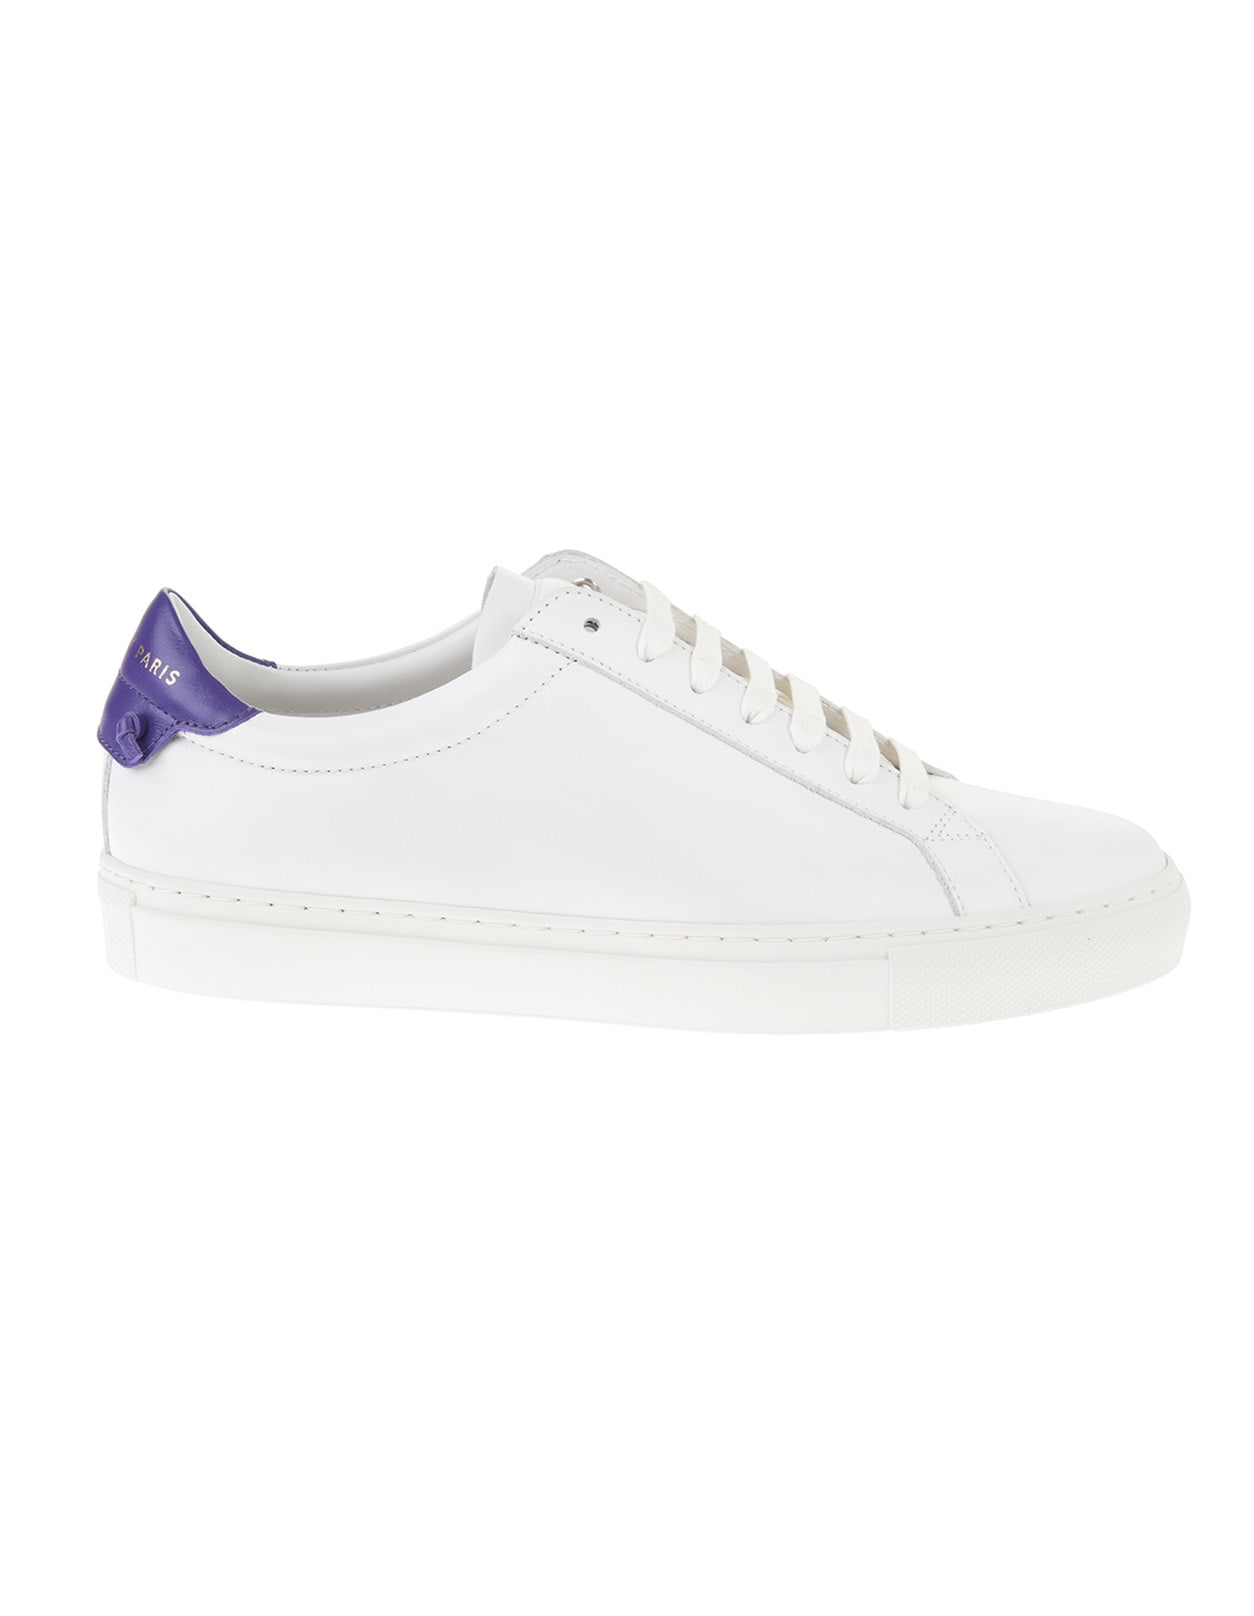 Givenchy Leathers WHITE AND PURPLE URBAN STREET MAN SNEAKERS